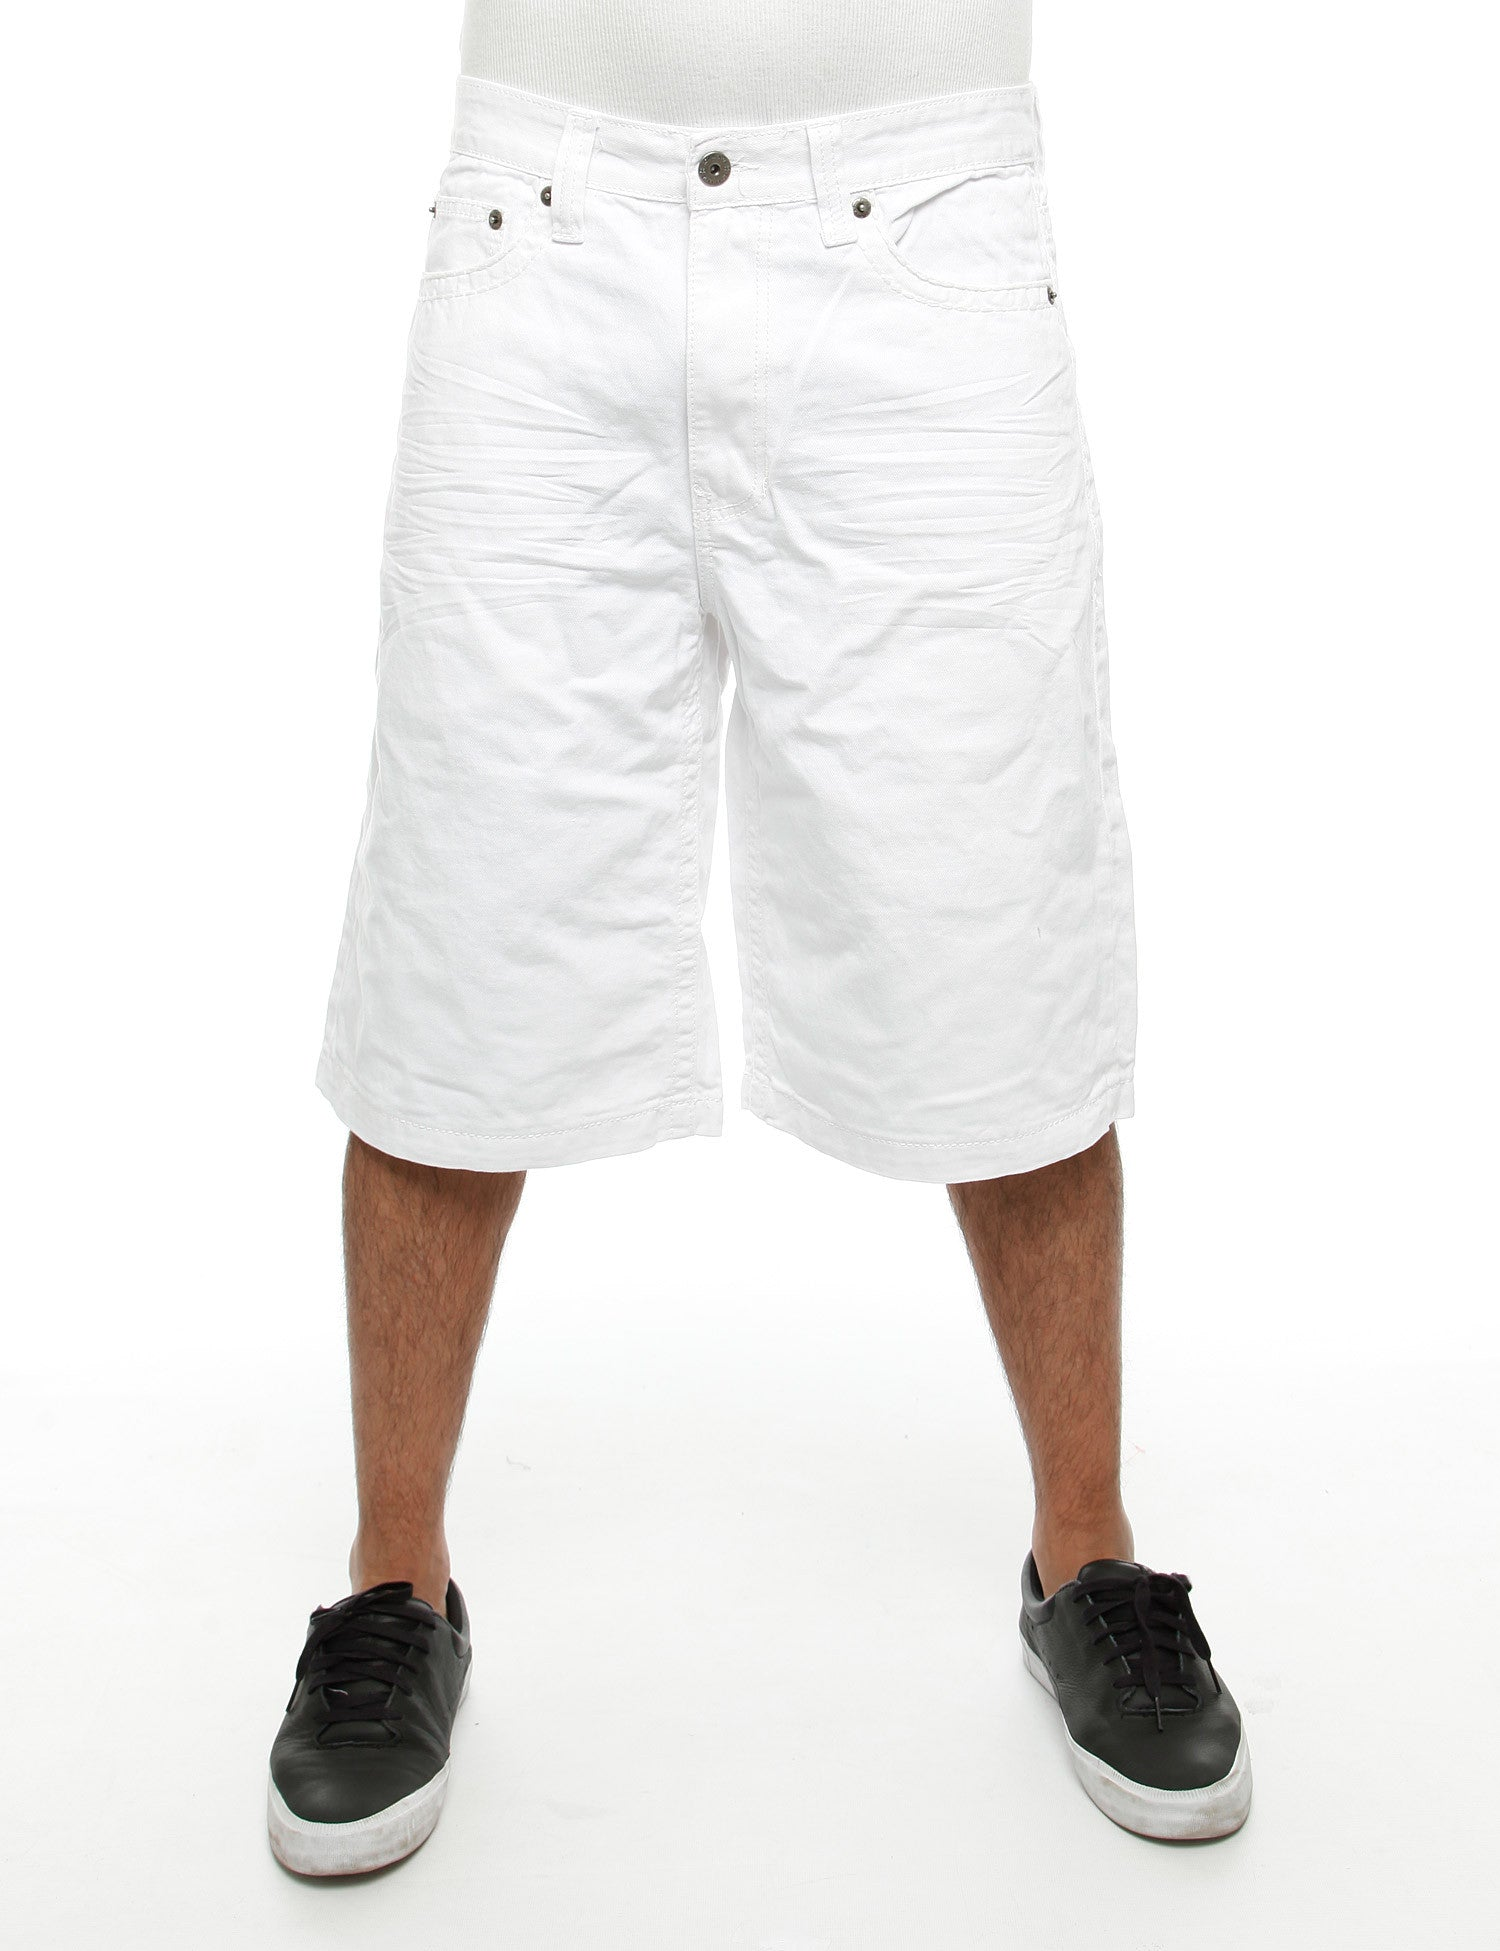 Royal Blue Shorts 9013 White